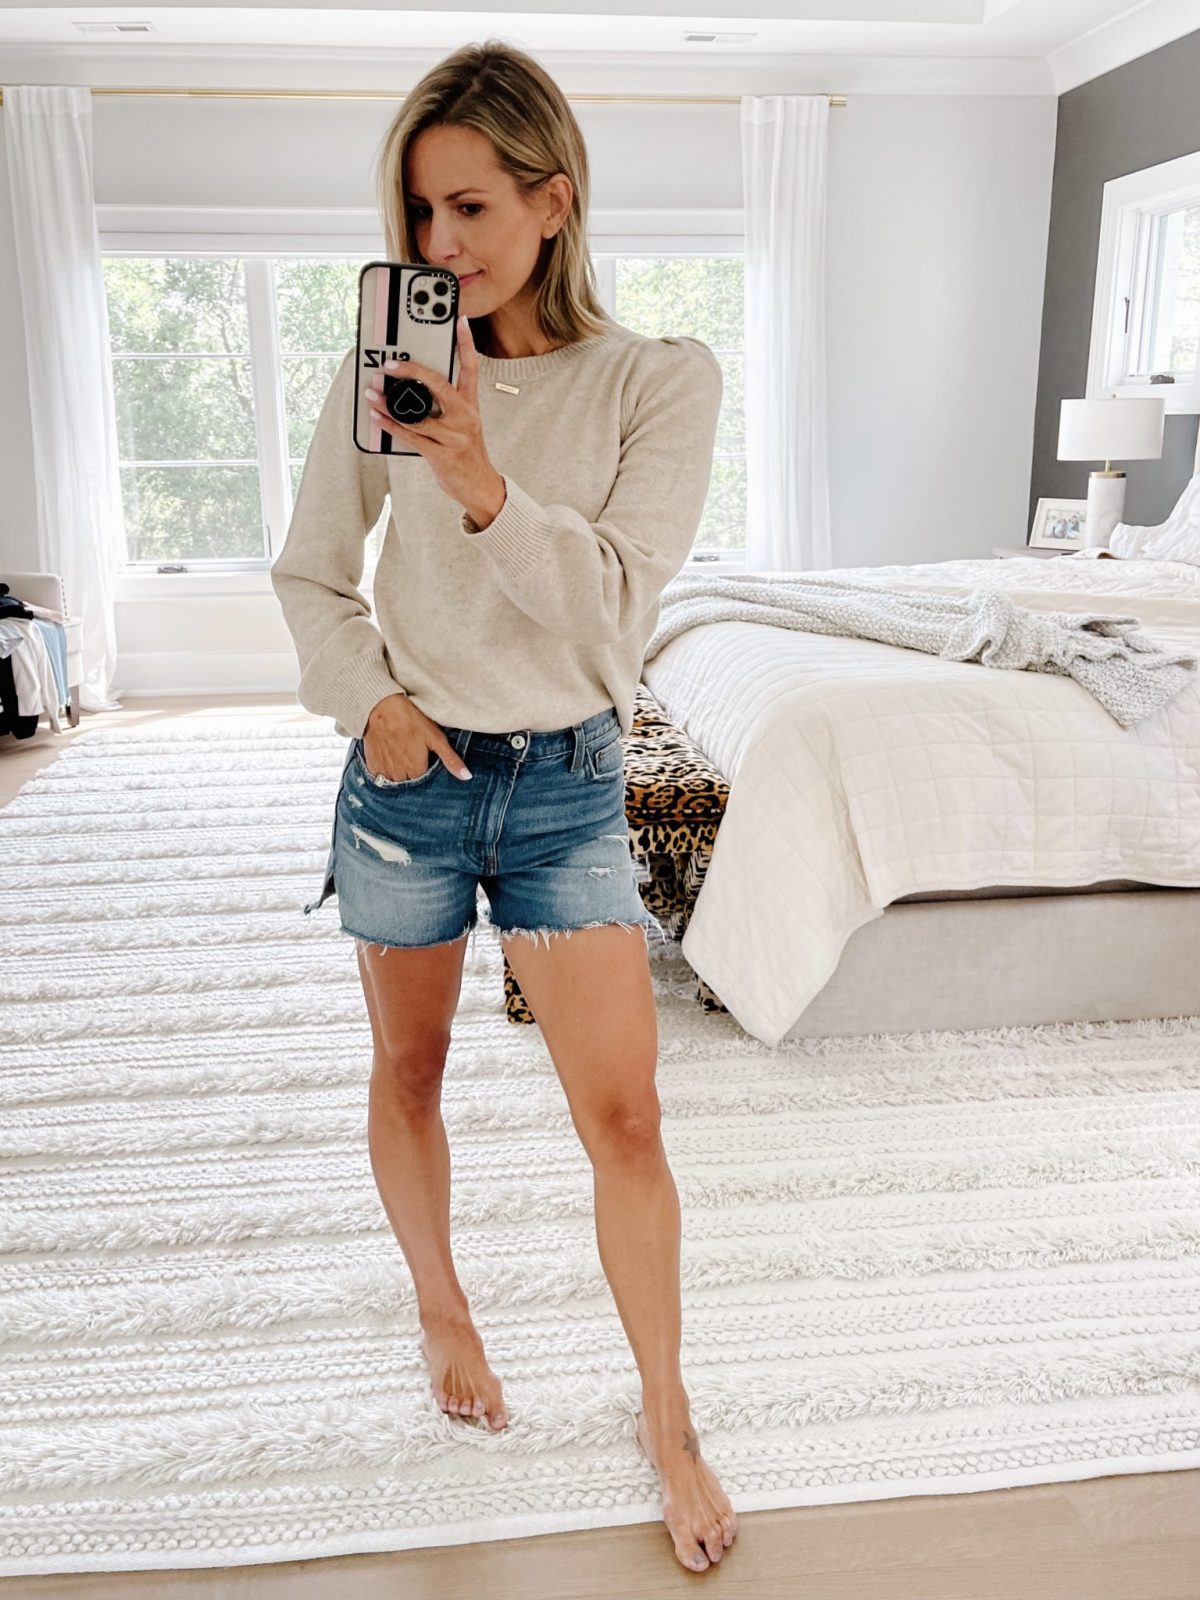 Sunday Sweet Edit outfit idea: sweater and shorts